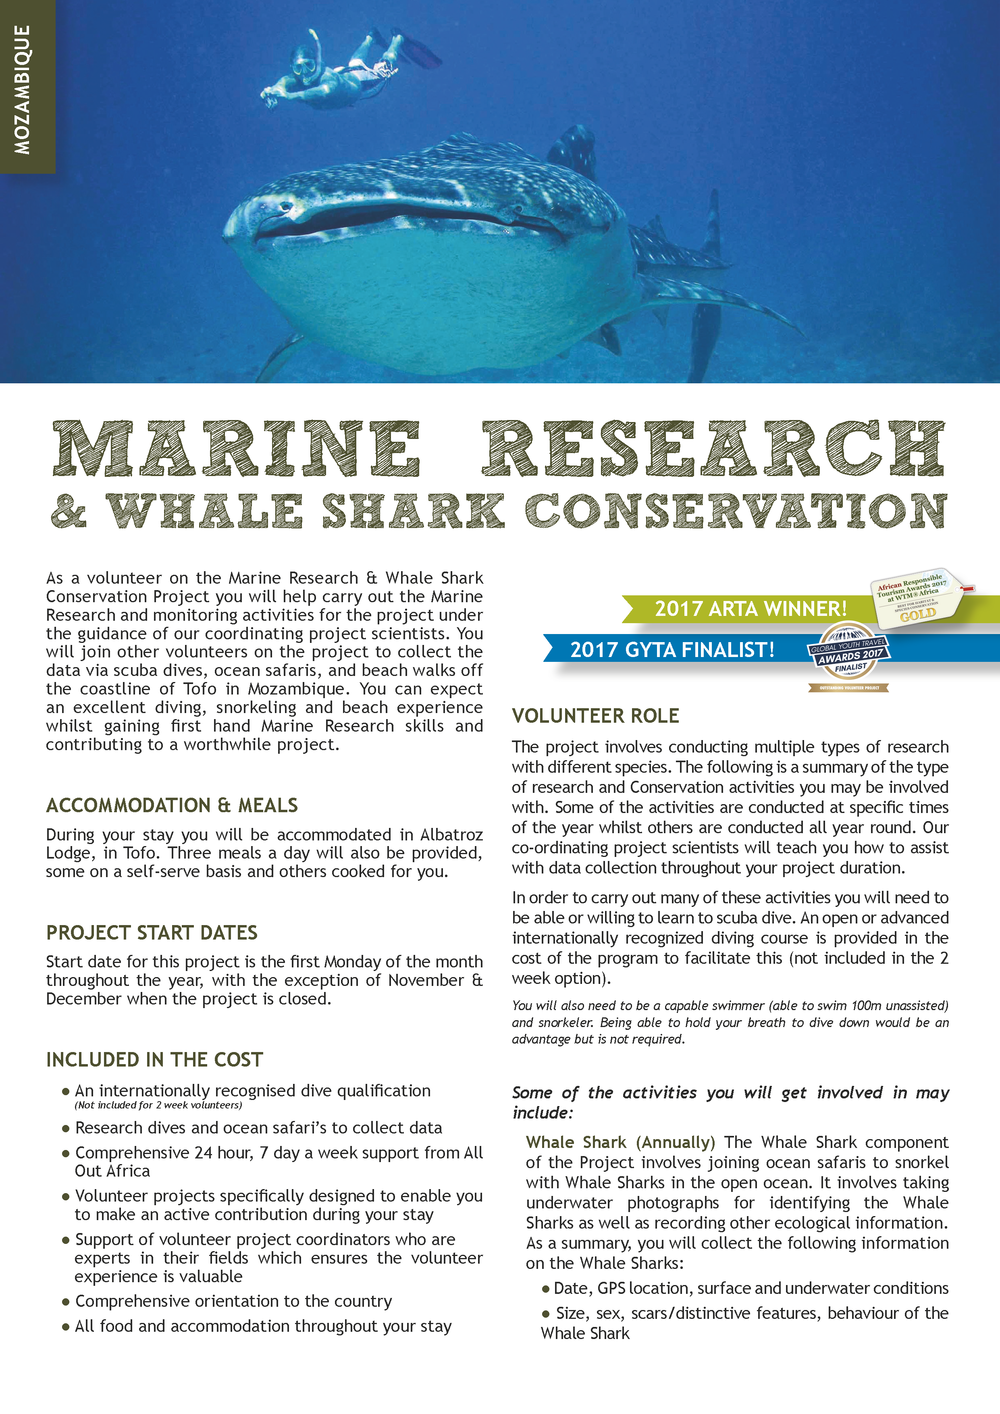 AOA_MOZAMBIQUE_ALL_Marine-Research_Page_3.png